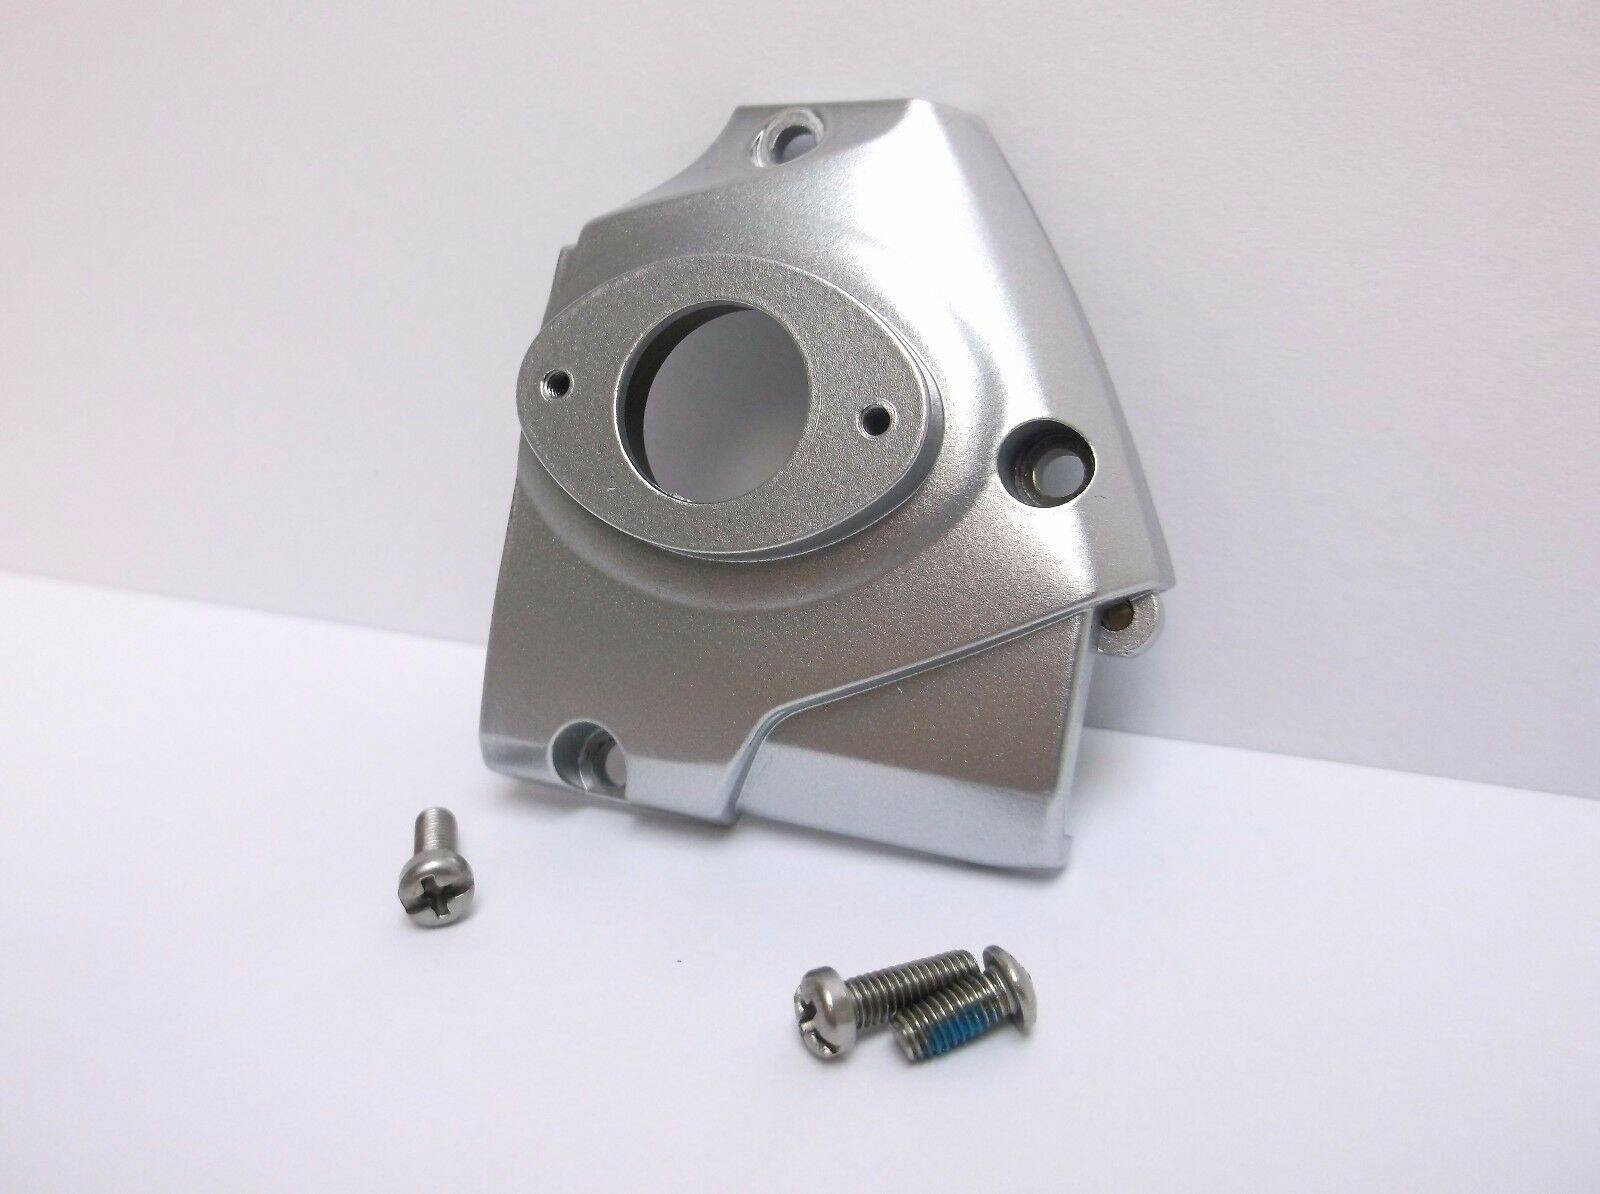 USED SHIMANO SPINNING REEL PART - Stella 2500F - Body Side Cover  B